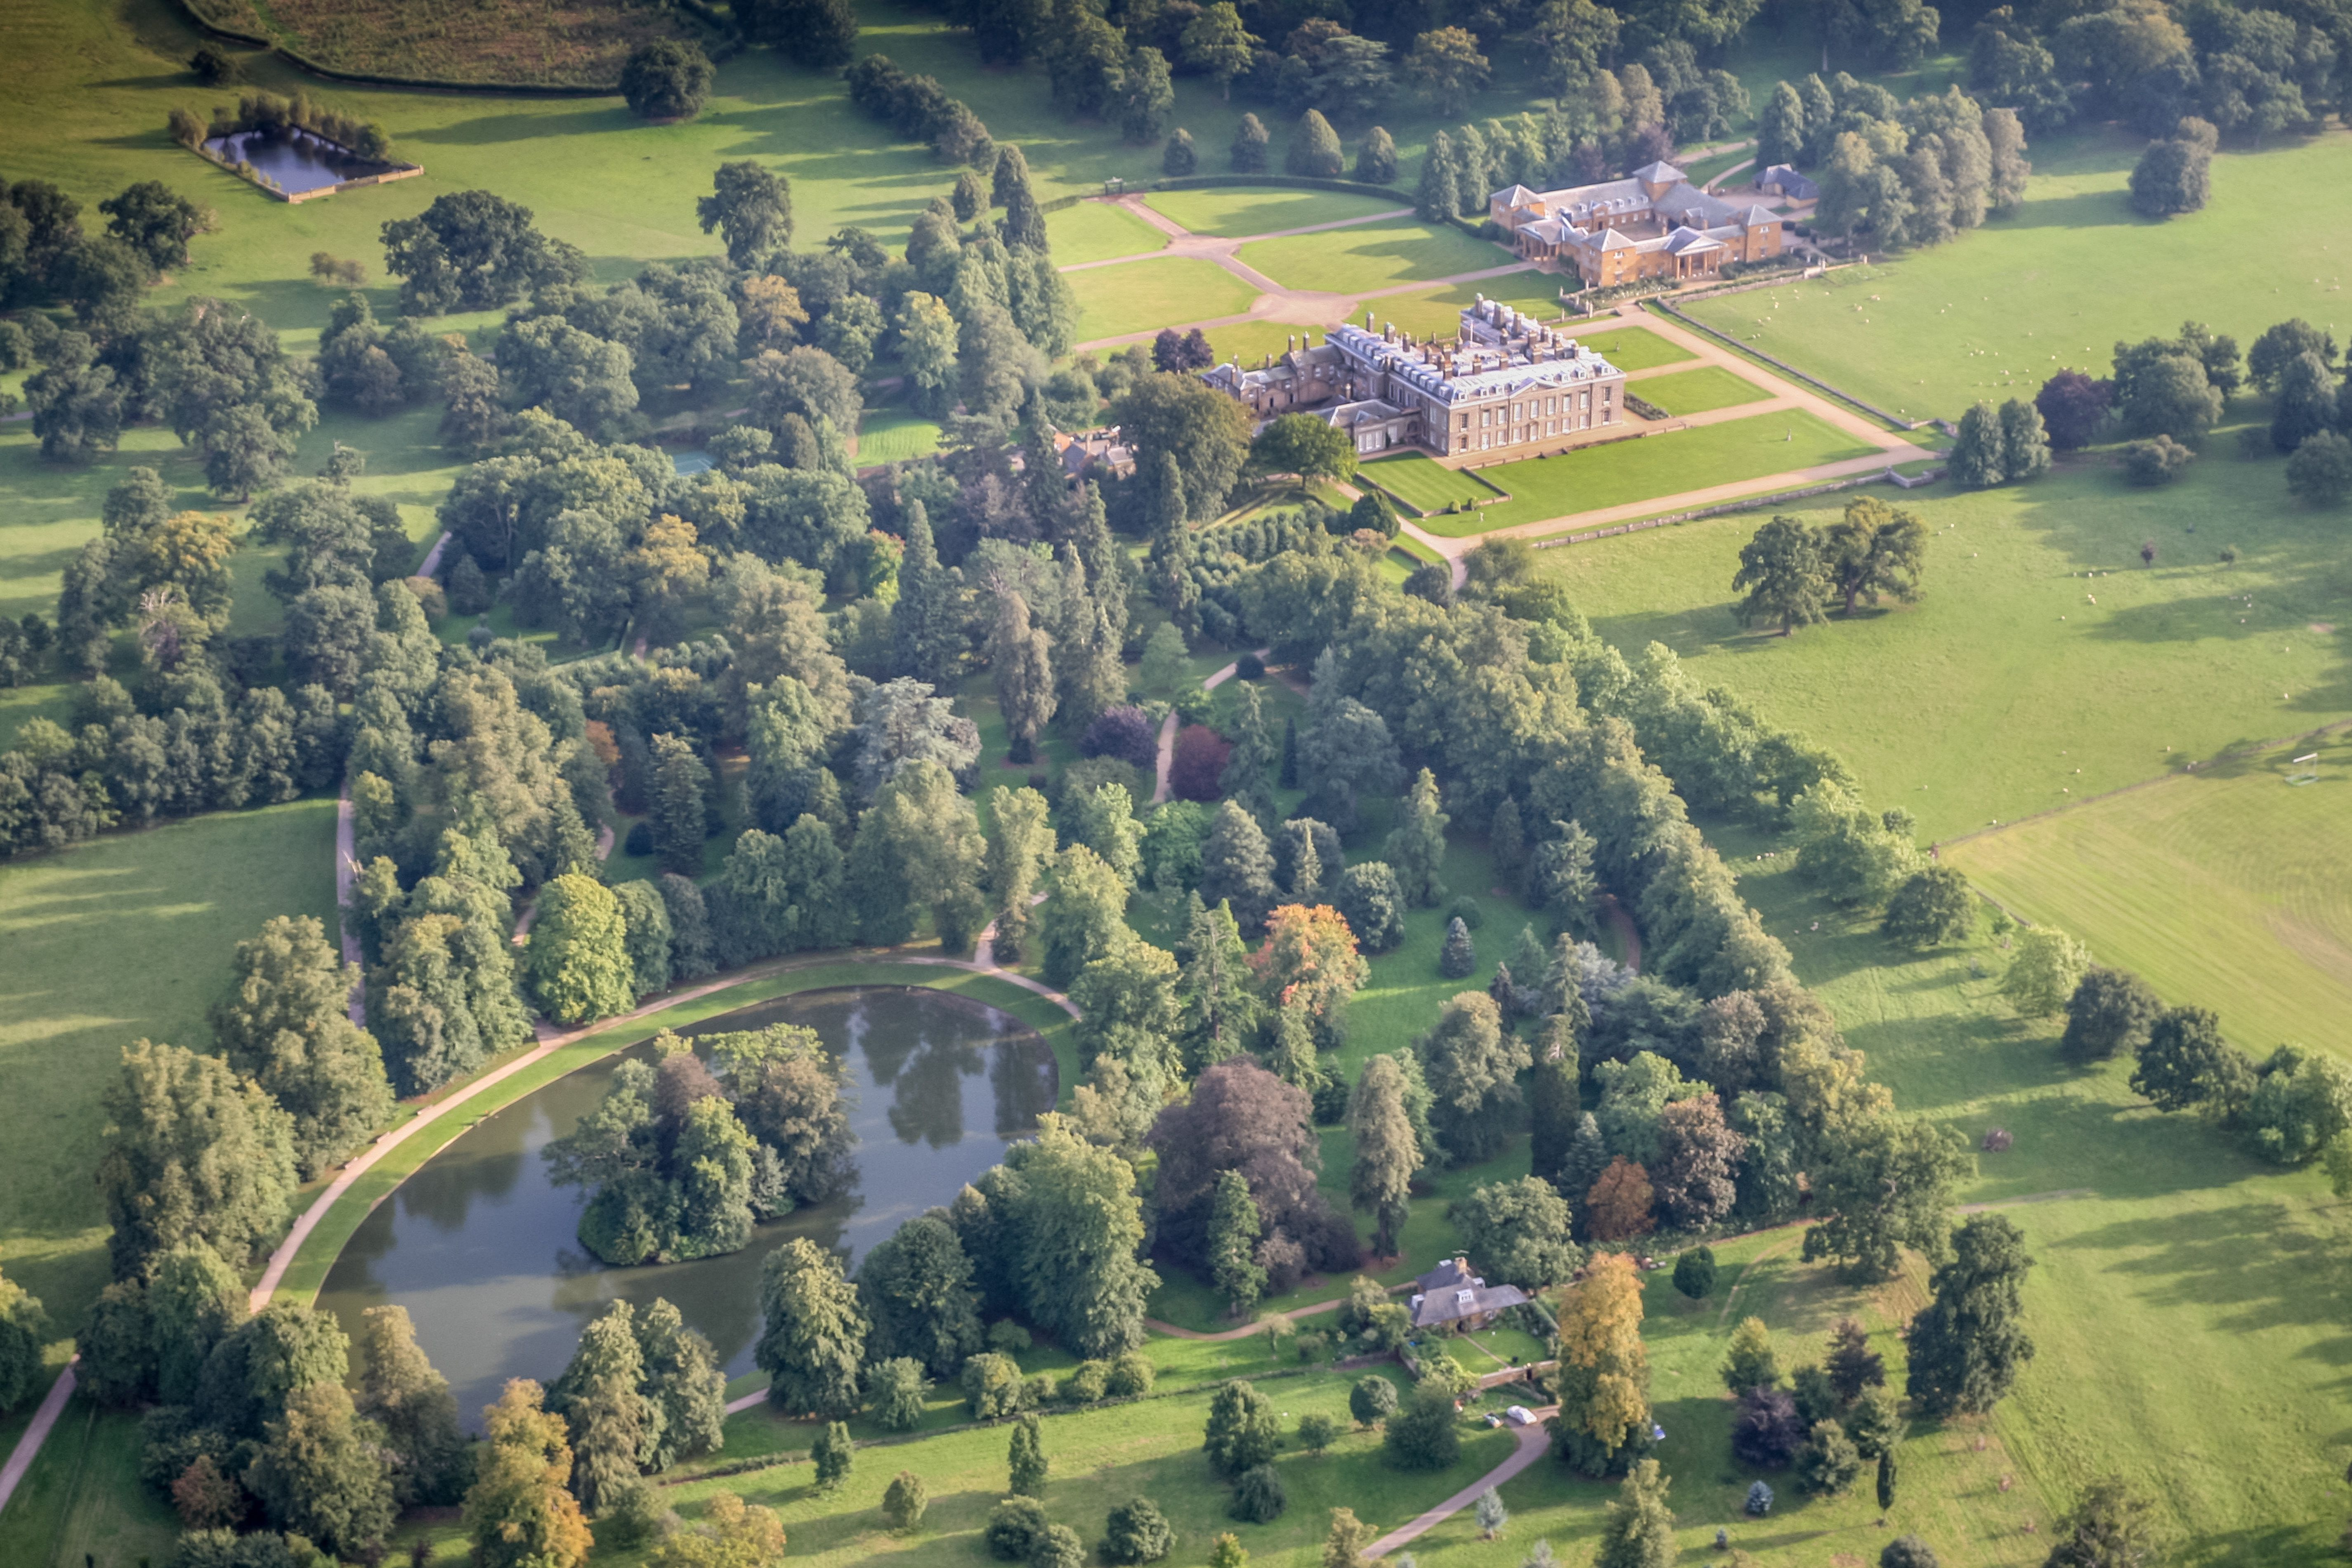 Aerial View of Althorp House and the burial site of Diana, Princess of Wales